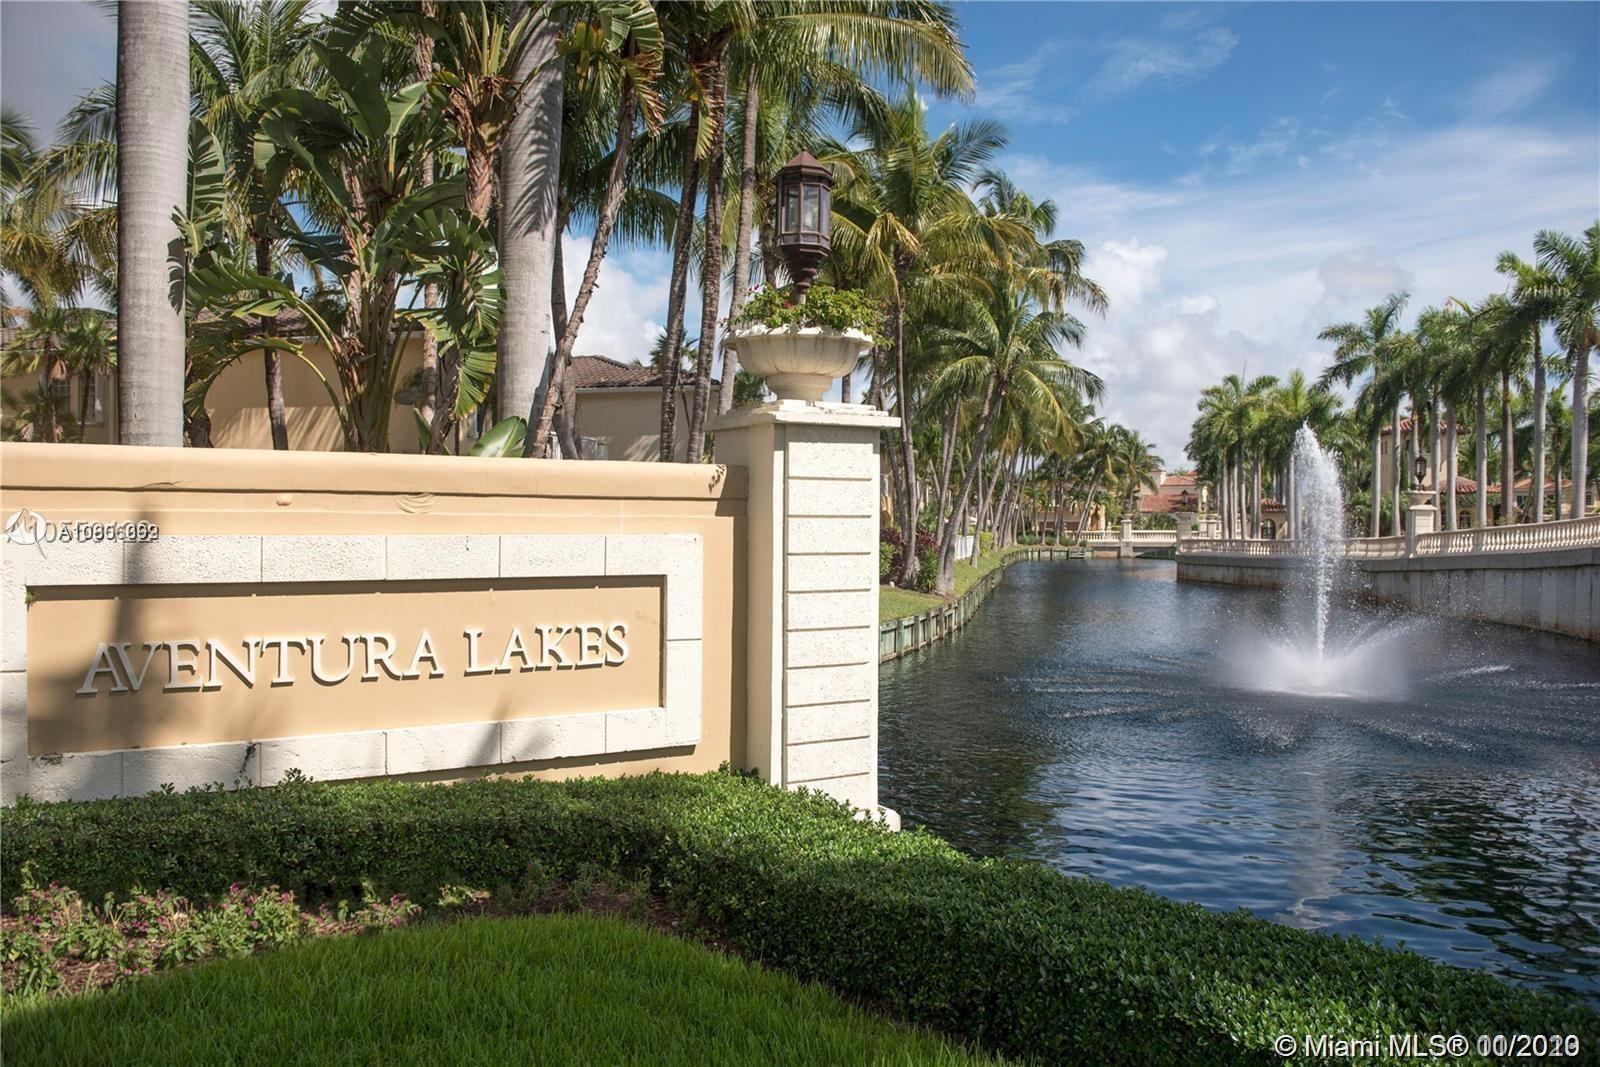 Beautiful home located in prestigious, exclusive Aventura Lakes. Gated community with accessible vis